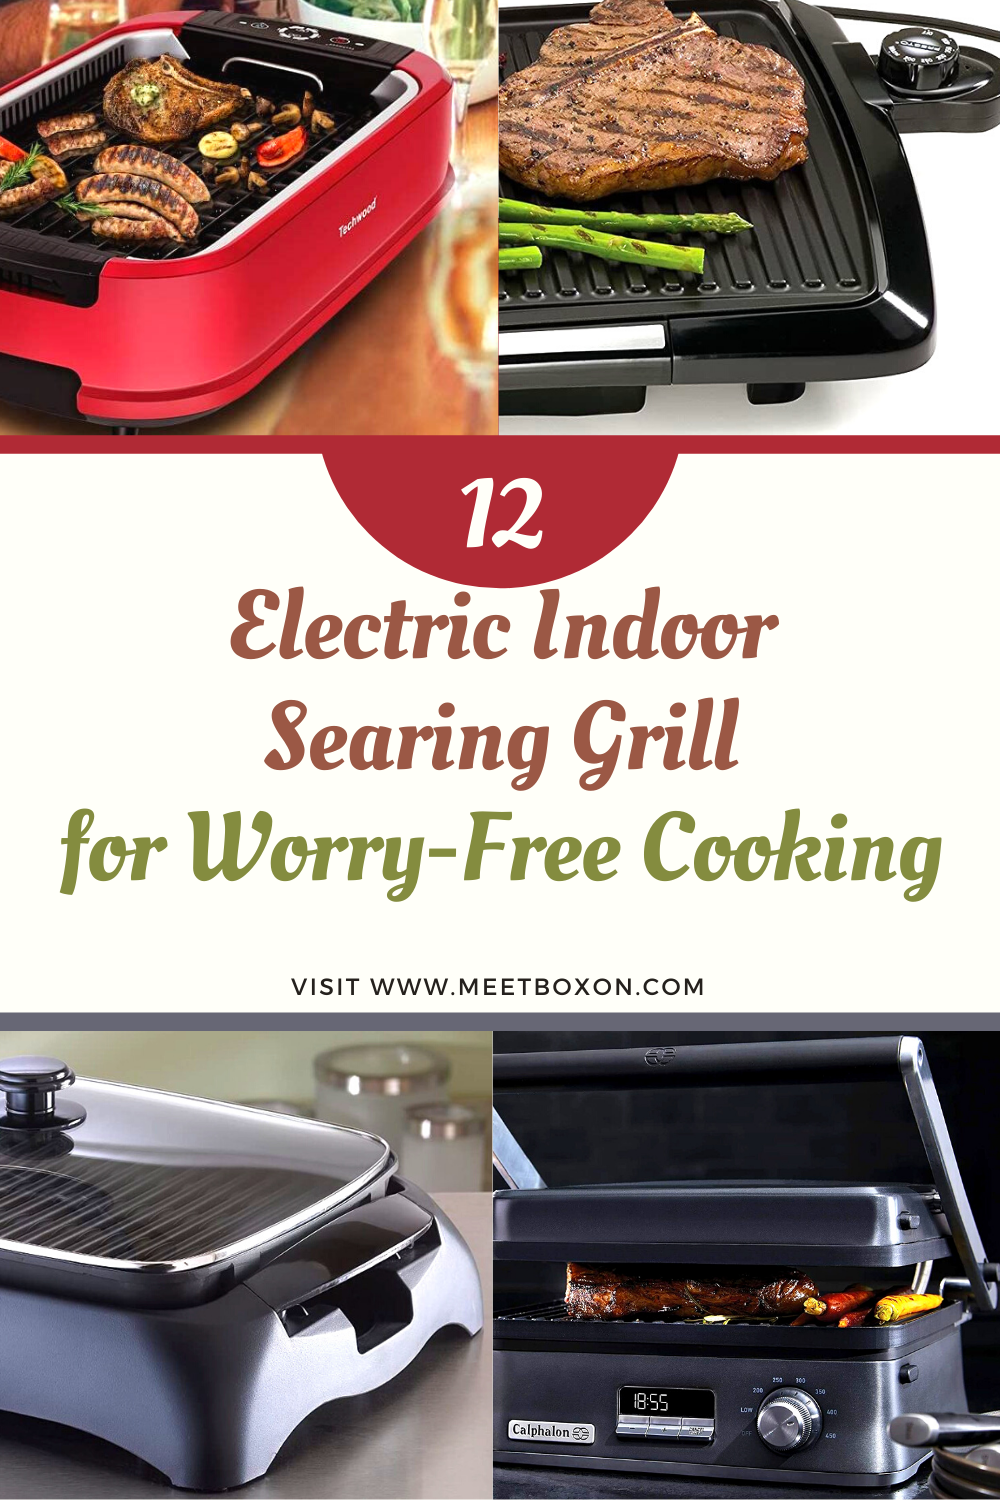 12 Electric Indoor Searing Grill for Worry-Free Cooking